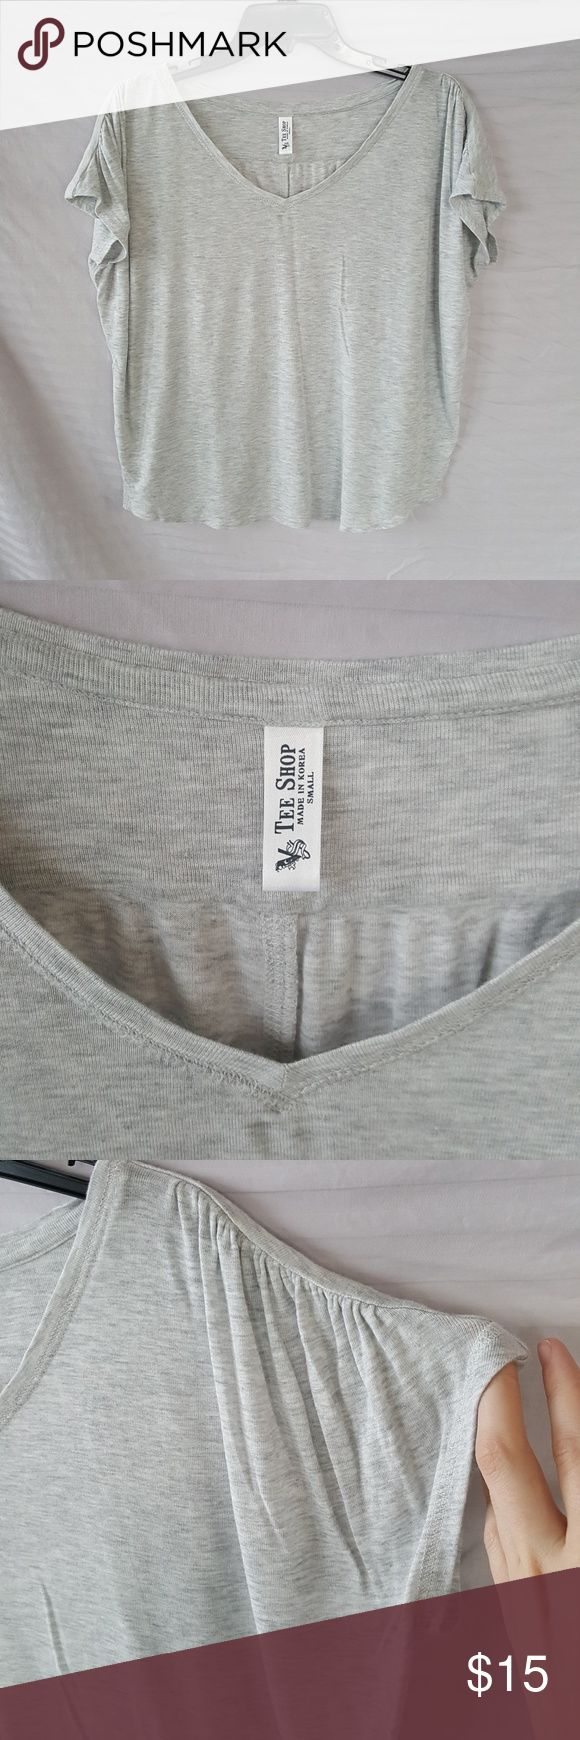 Victoria's Secret Tee Heather Gray Victoria's Secret Tee, Heather Gray, marl, scooping v-neck, curved hem at sides, sleeves have cute ruching, flowy loose fit.  Back of right sleeves has a tiny hole, shown in pics, otherwise in excellent condition.  Bought through Victoria's Secret website, tag says Tee Shop. Victoria's Secret Tops Tees - Short Sleeve